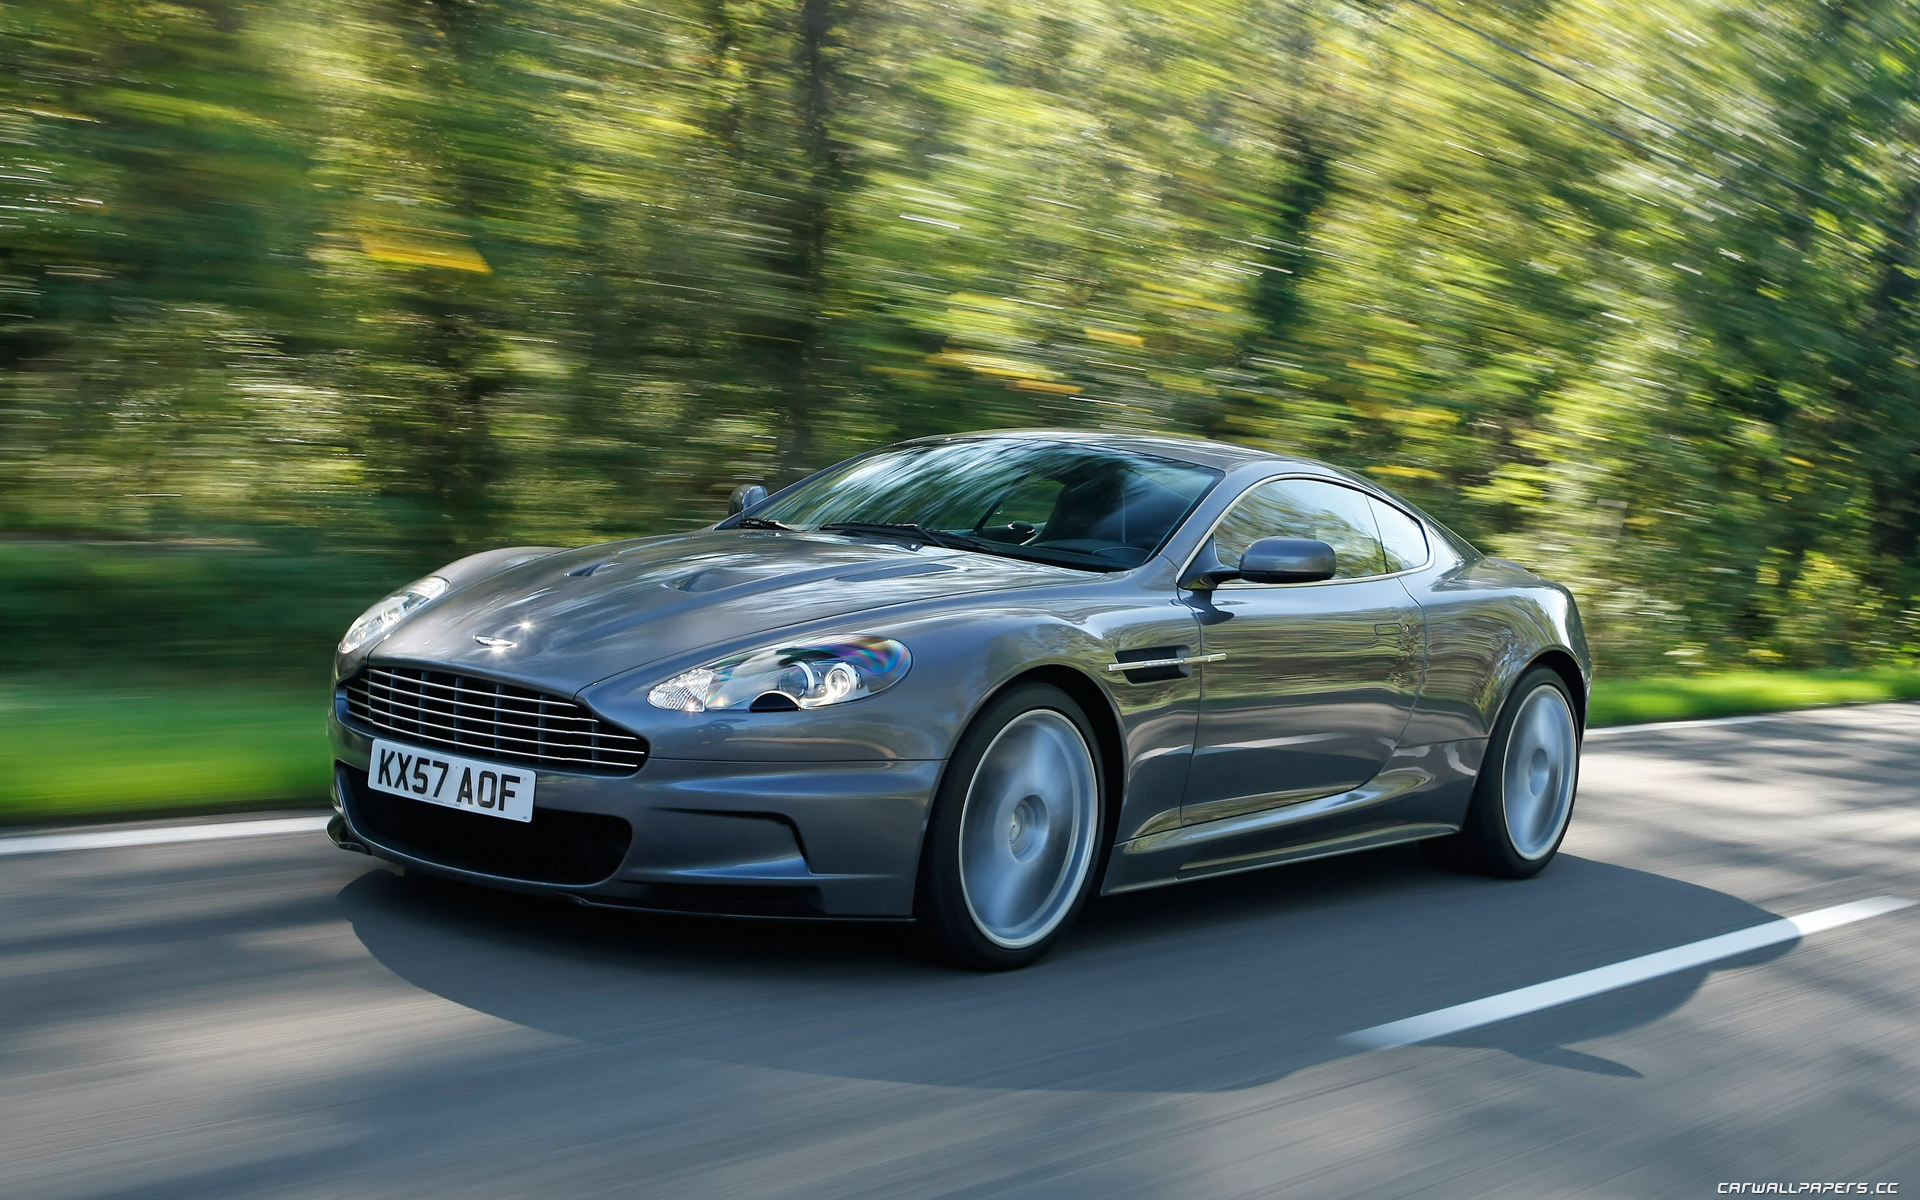 2008 Aston Martin Dbs s Informations Articles BestCarMag